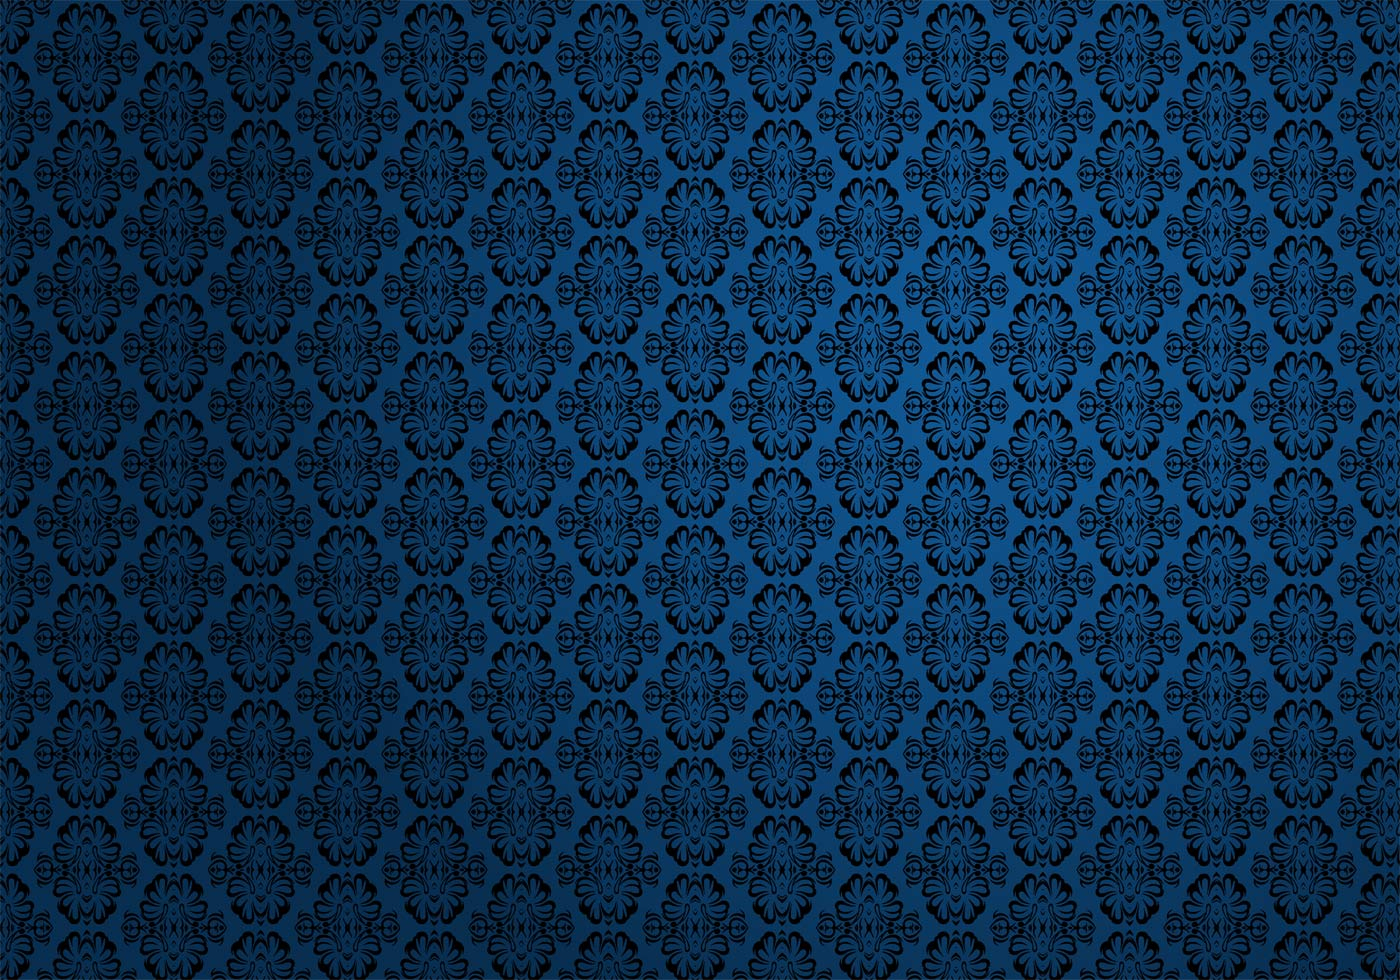 Wallpaper Pattern Free Vector Art - (32391 Free Downloads) - Free Printable Wallpaper Patterns